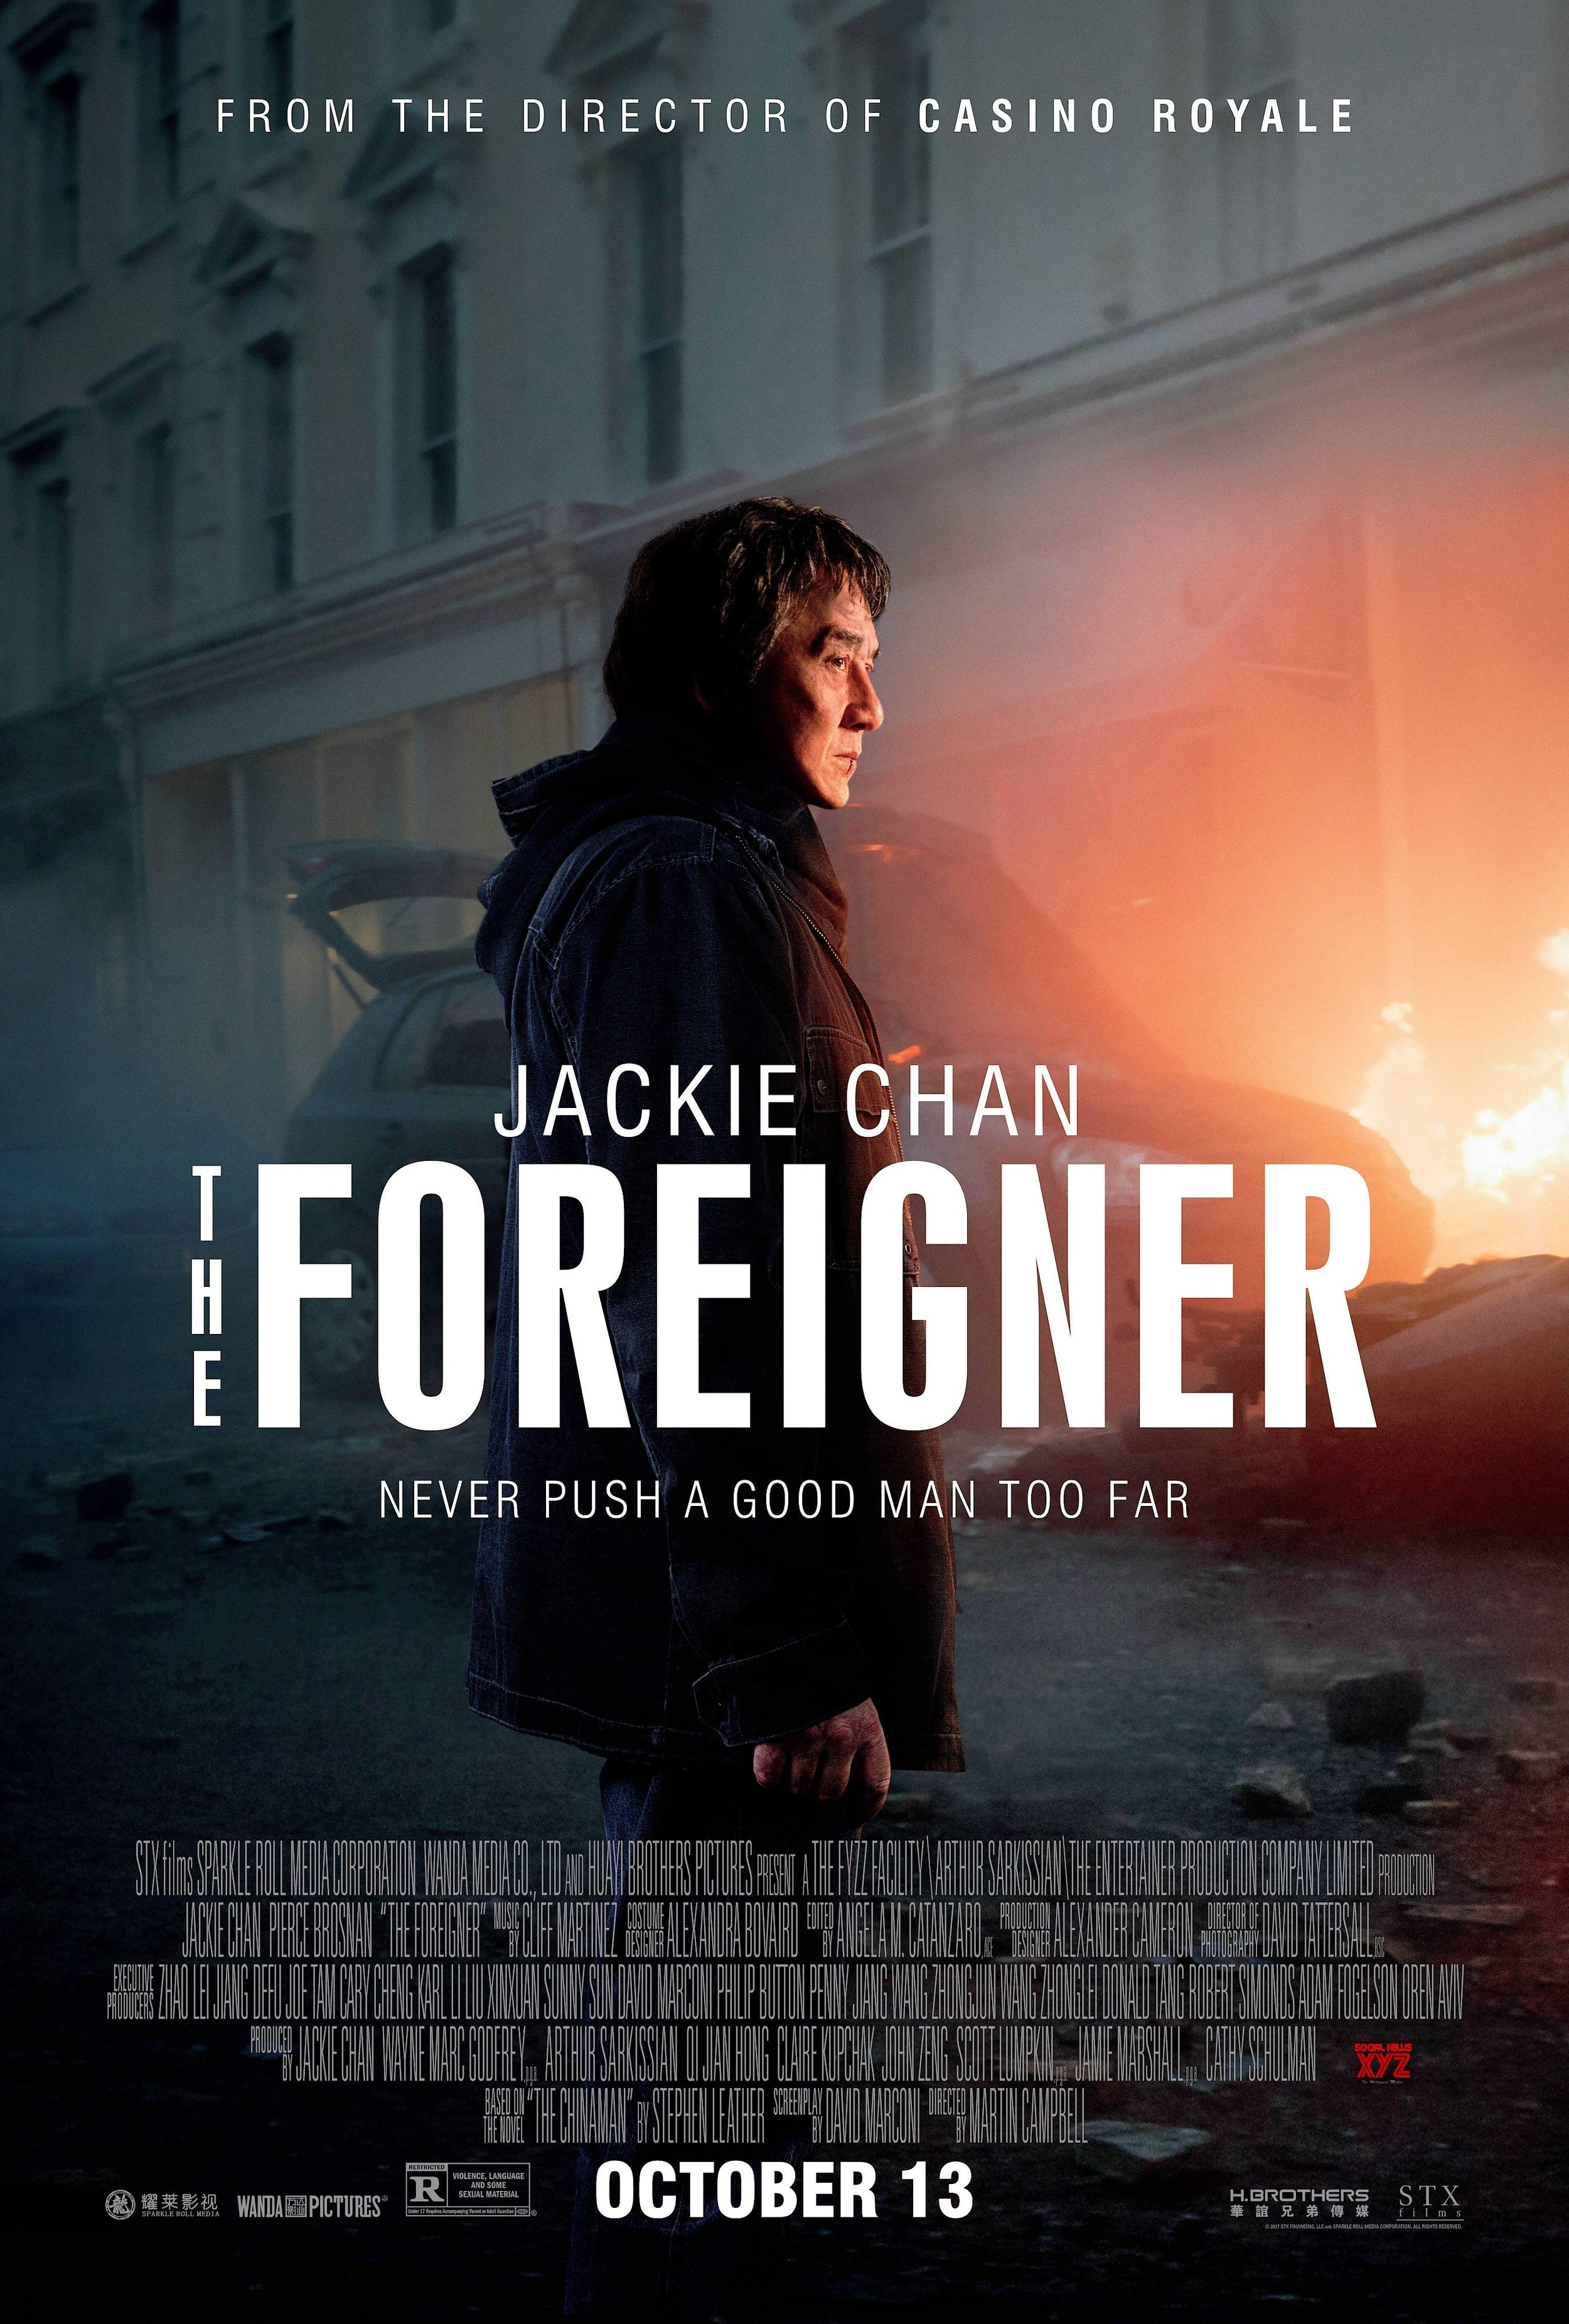 the-foreigner-movie-poster-.jpg